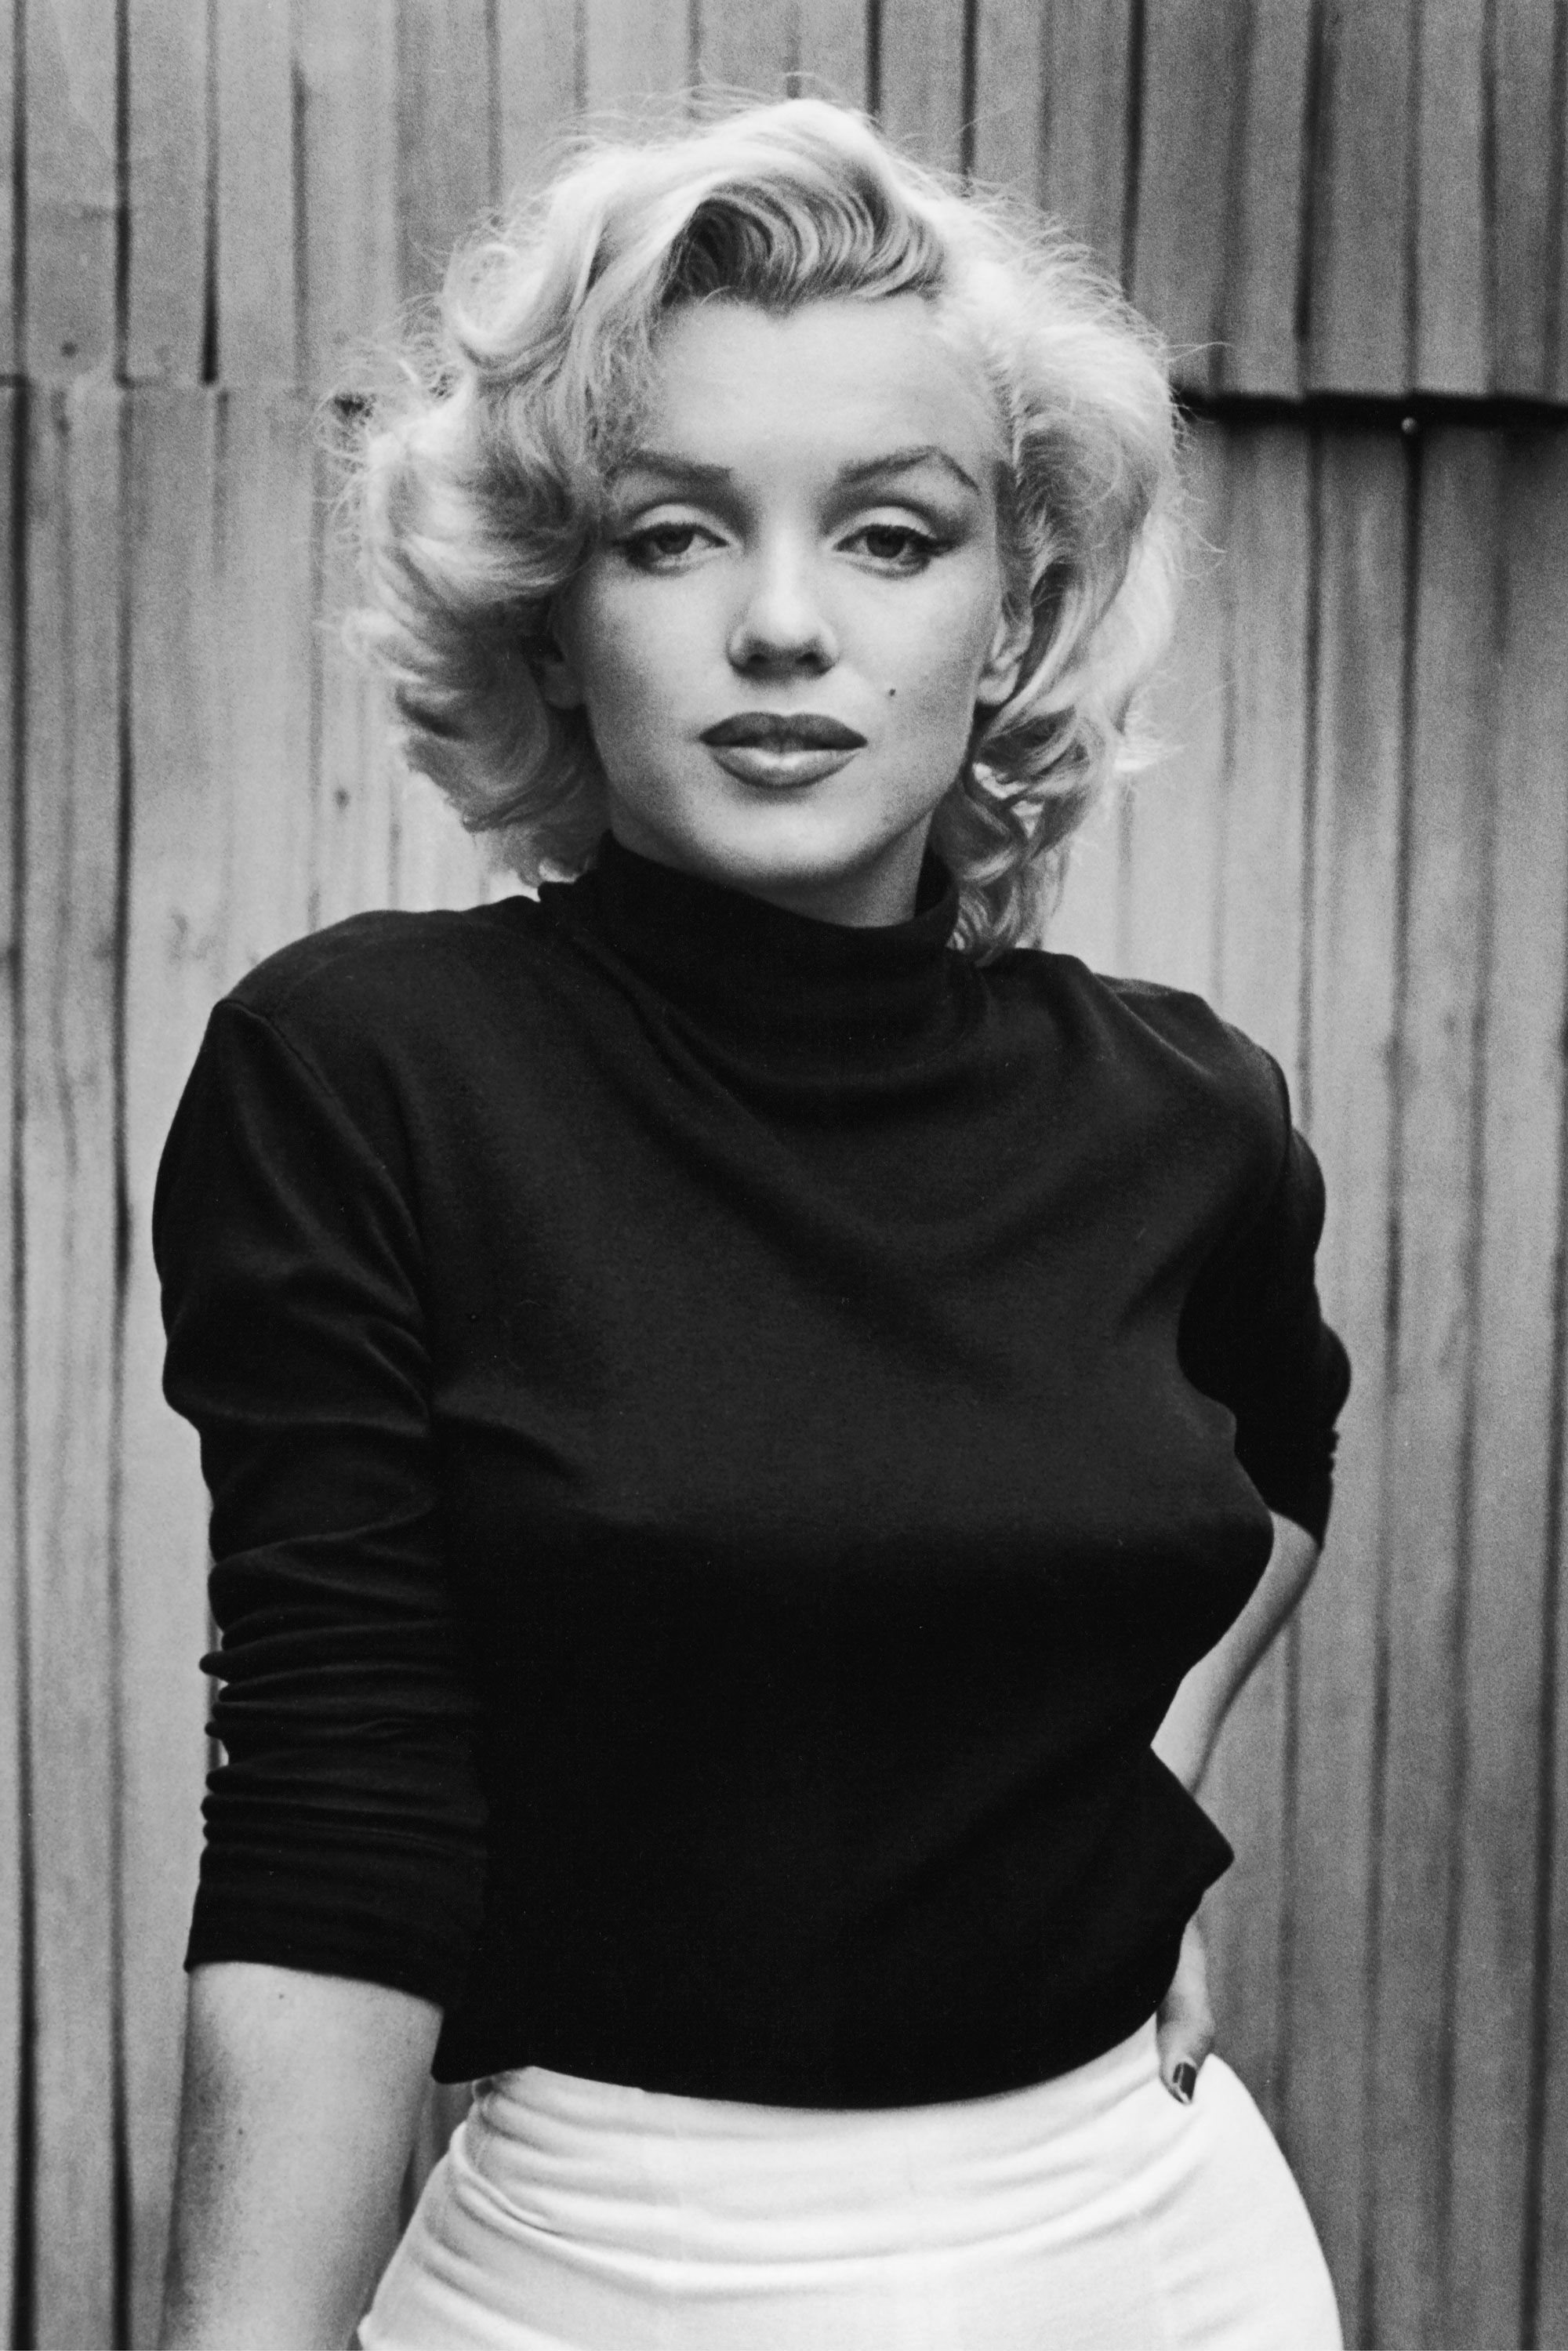 6 Conspiracy Theories About Marilyn Monroe's Death - How